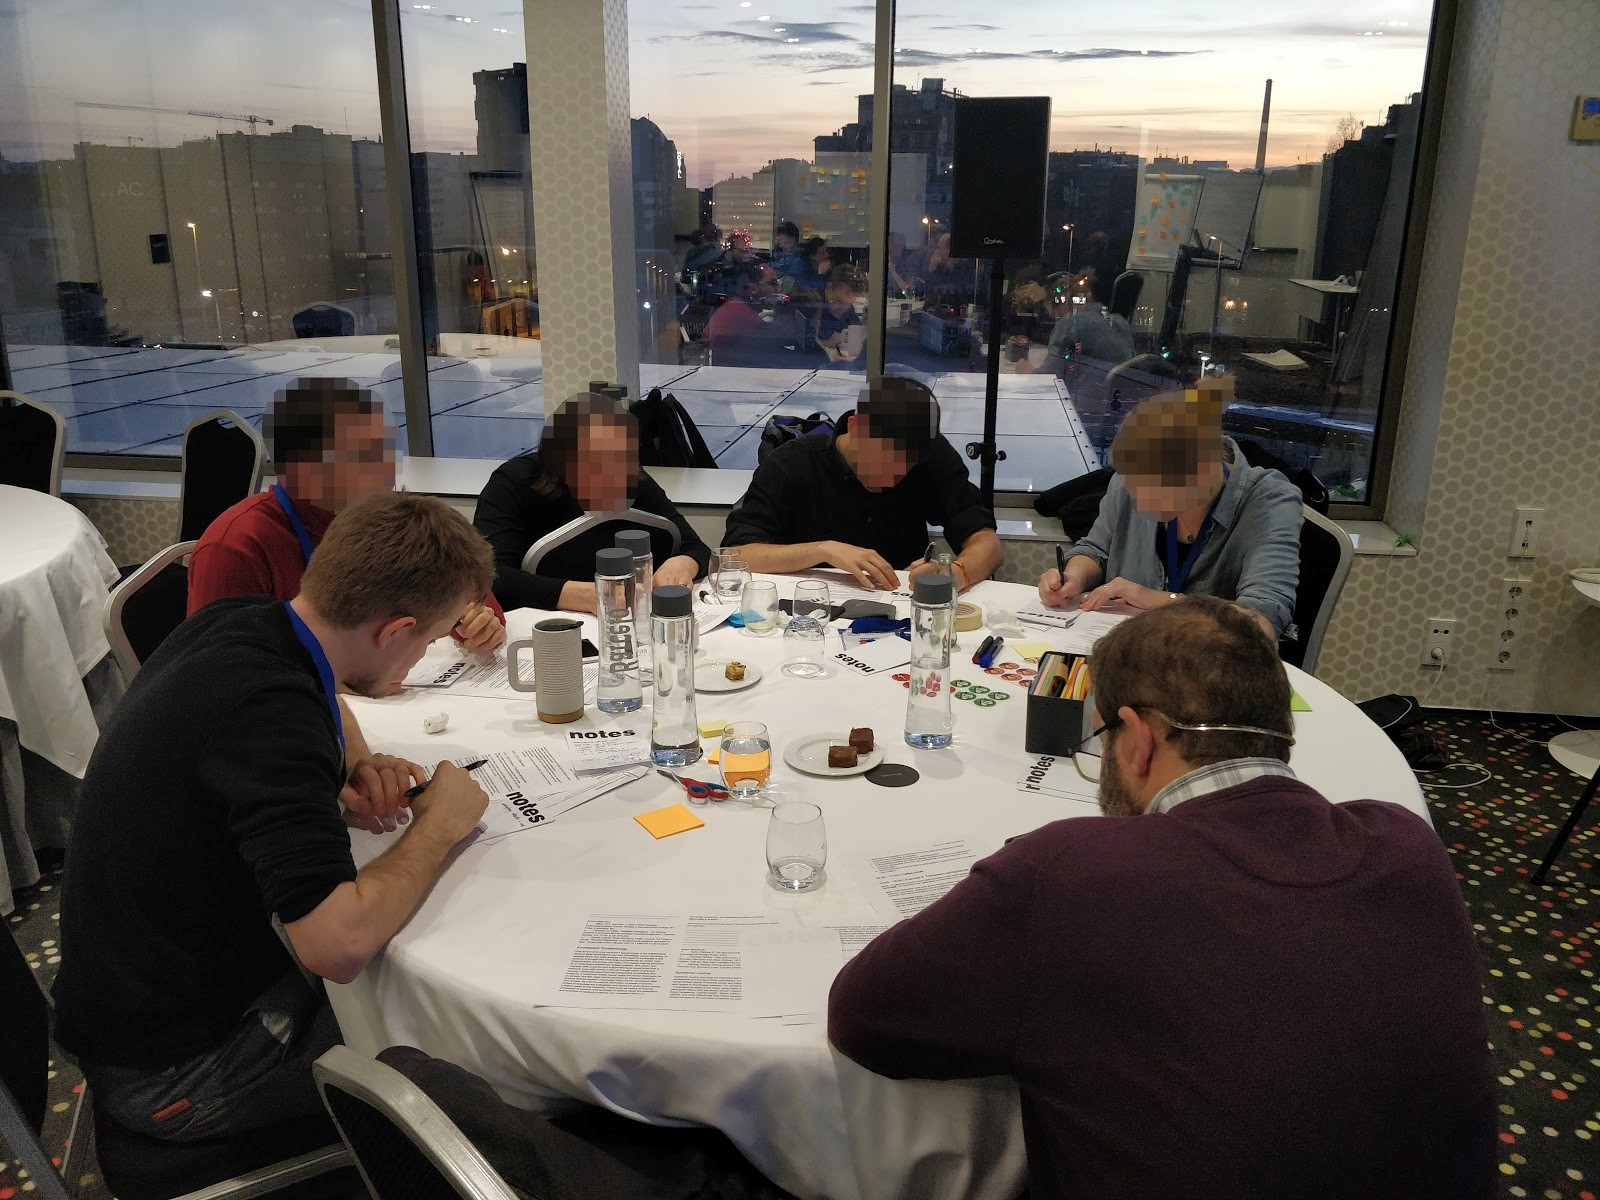 Workshop participants drawing their workflows